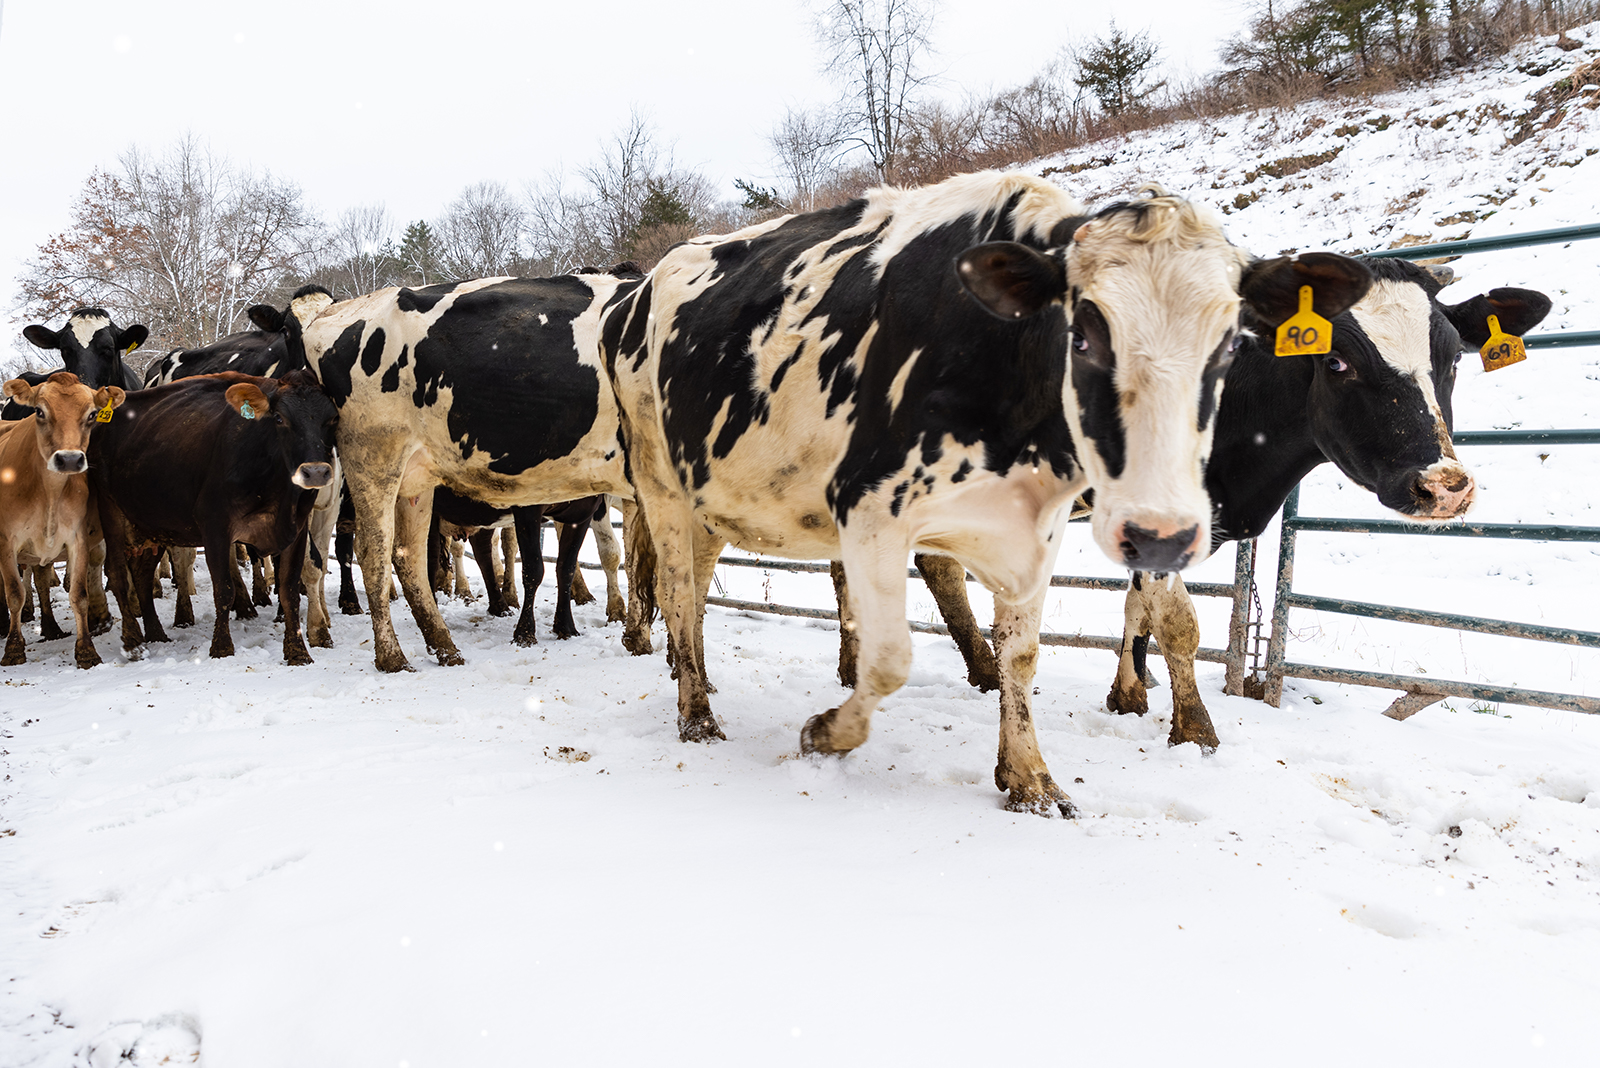 A group of cows going outside in the snow.